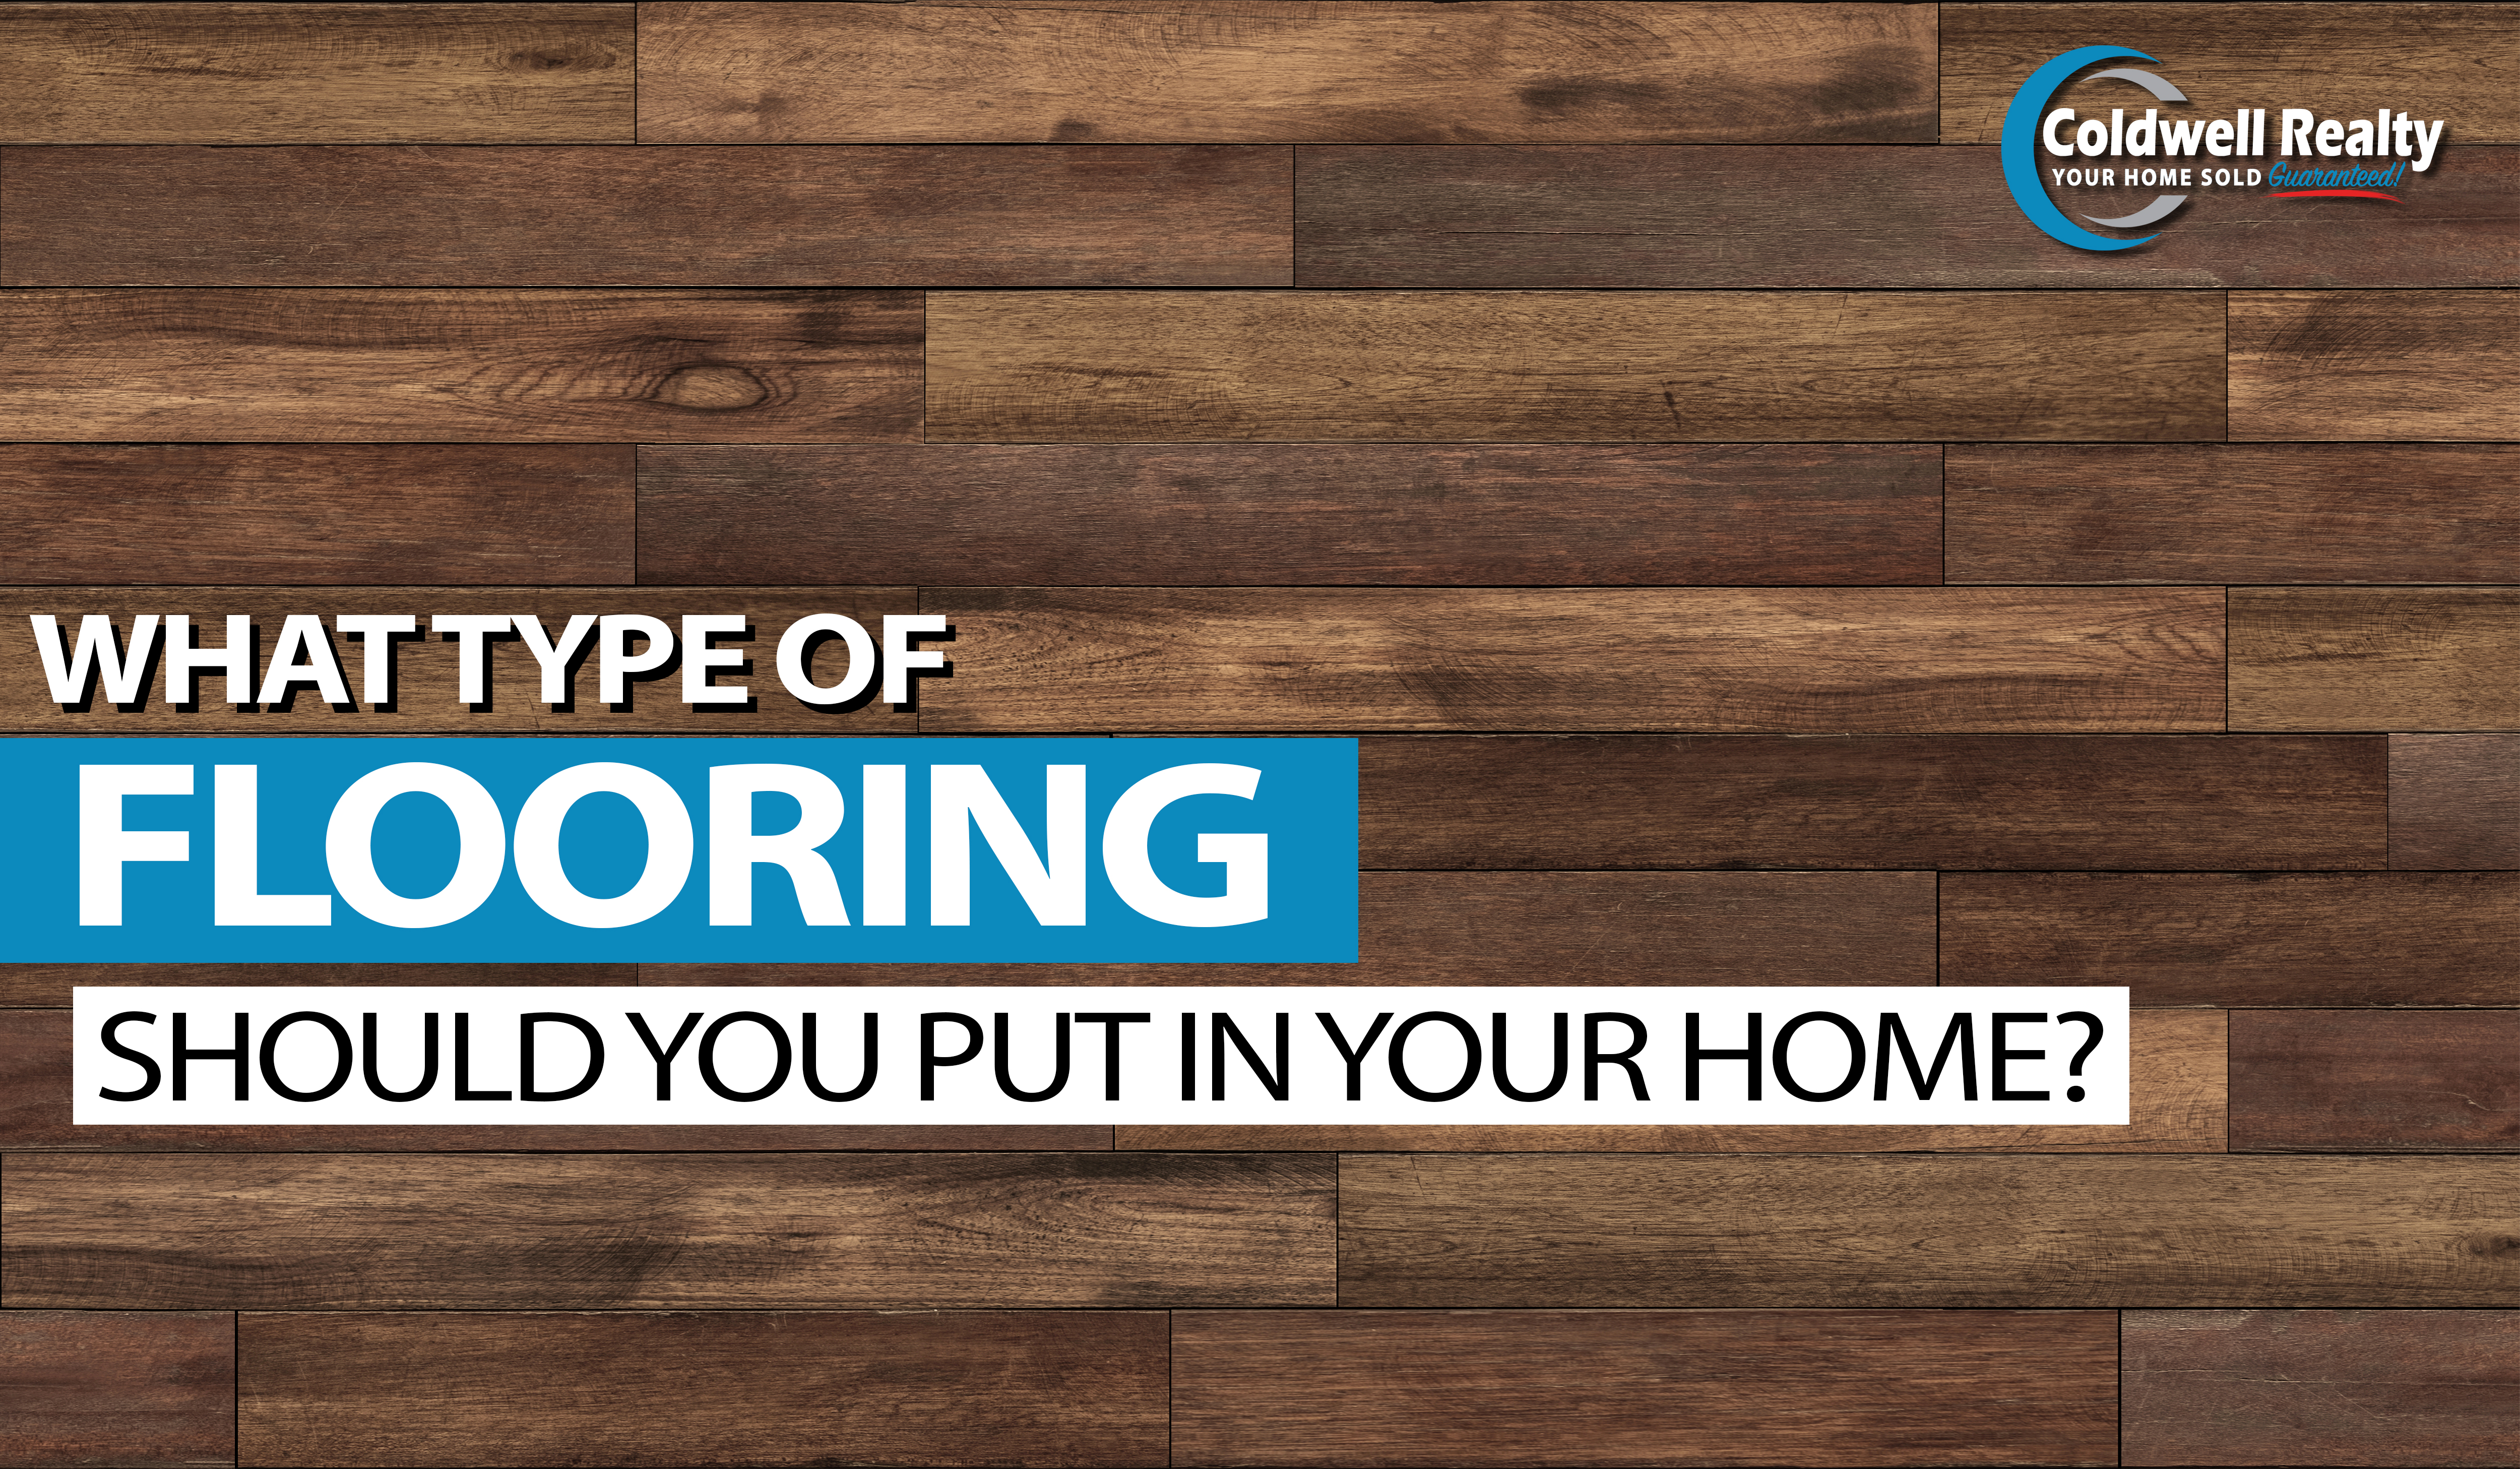 WHAT TYPE OF FLOORING SHOULD YOU PUT IN YOUR HOME?